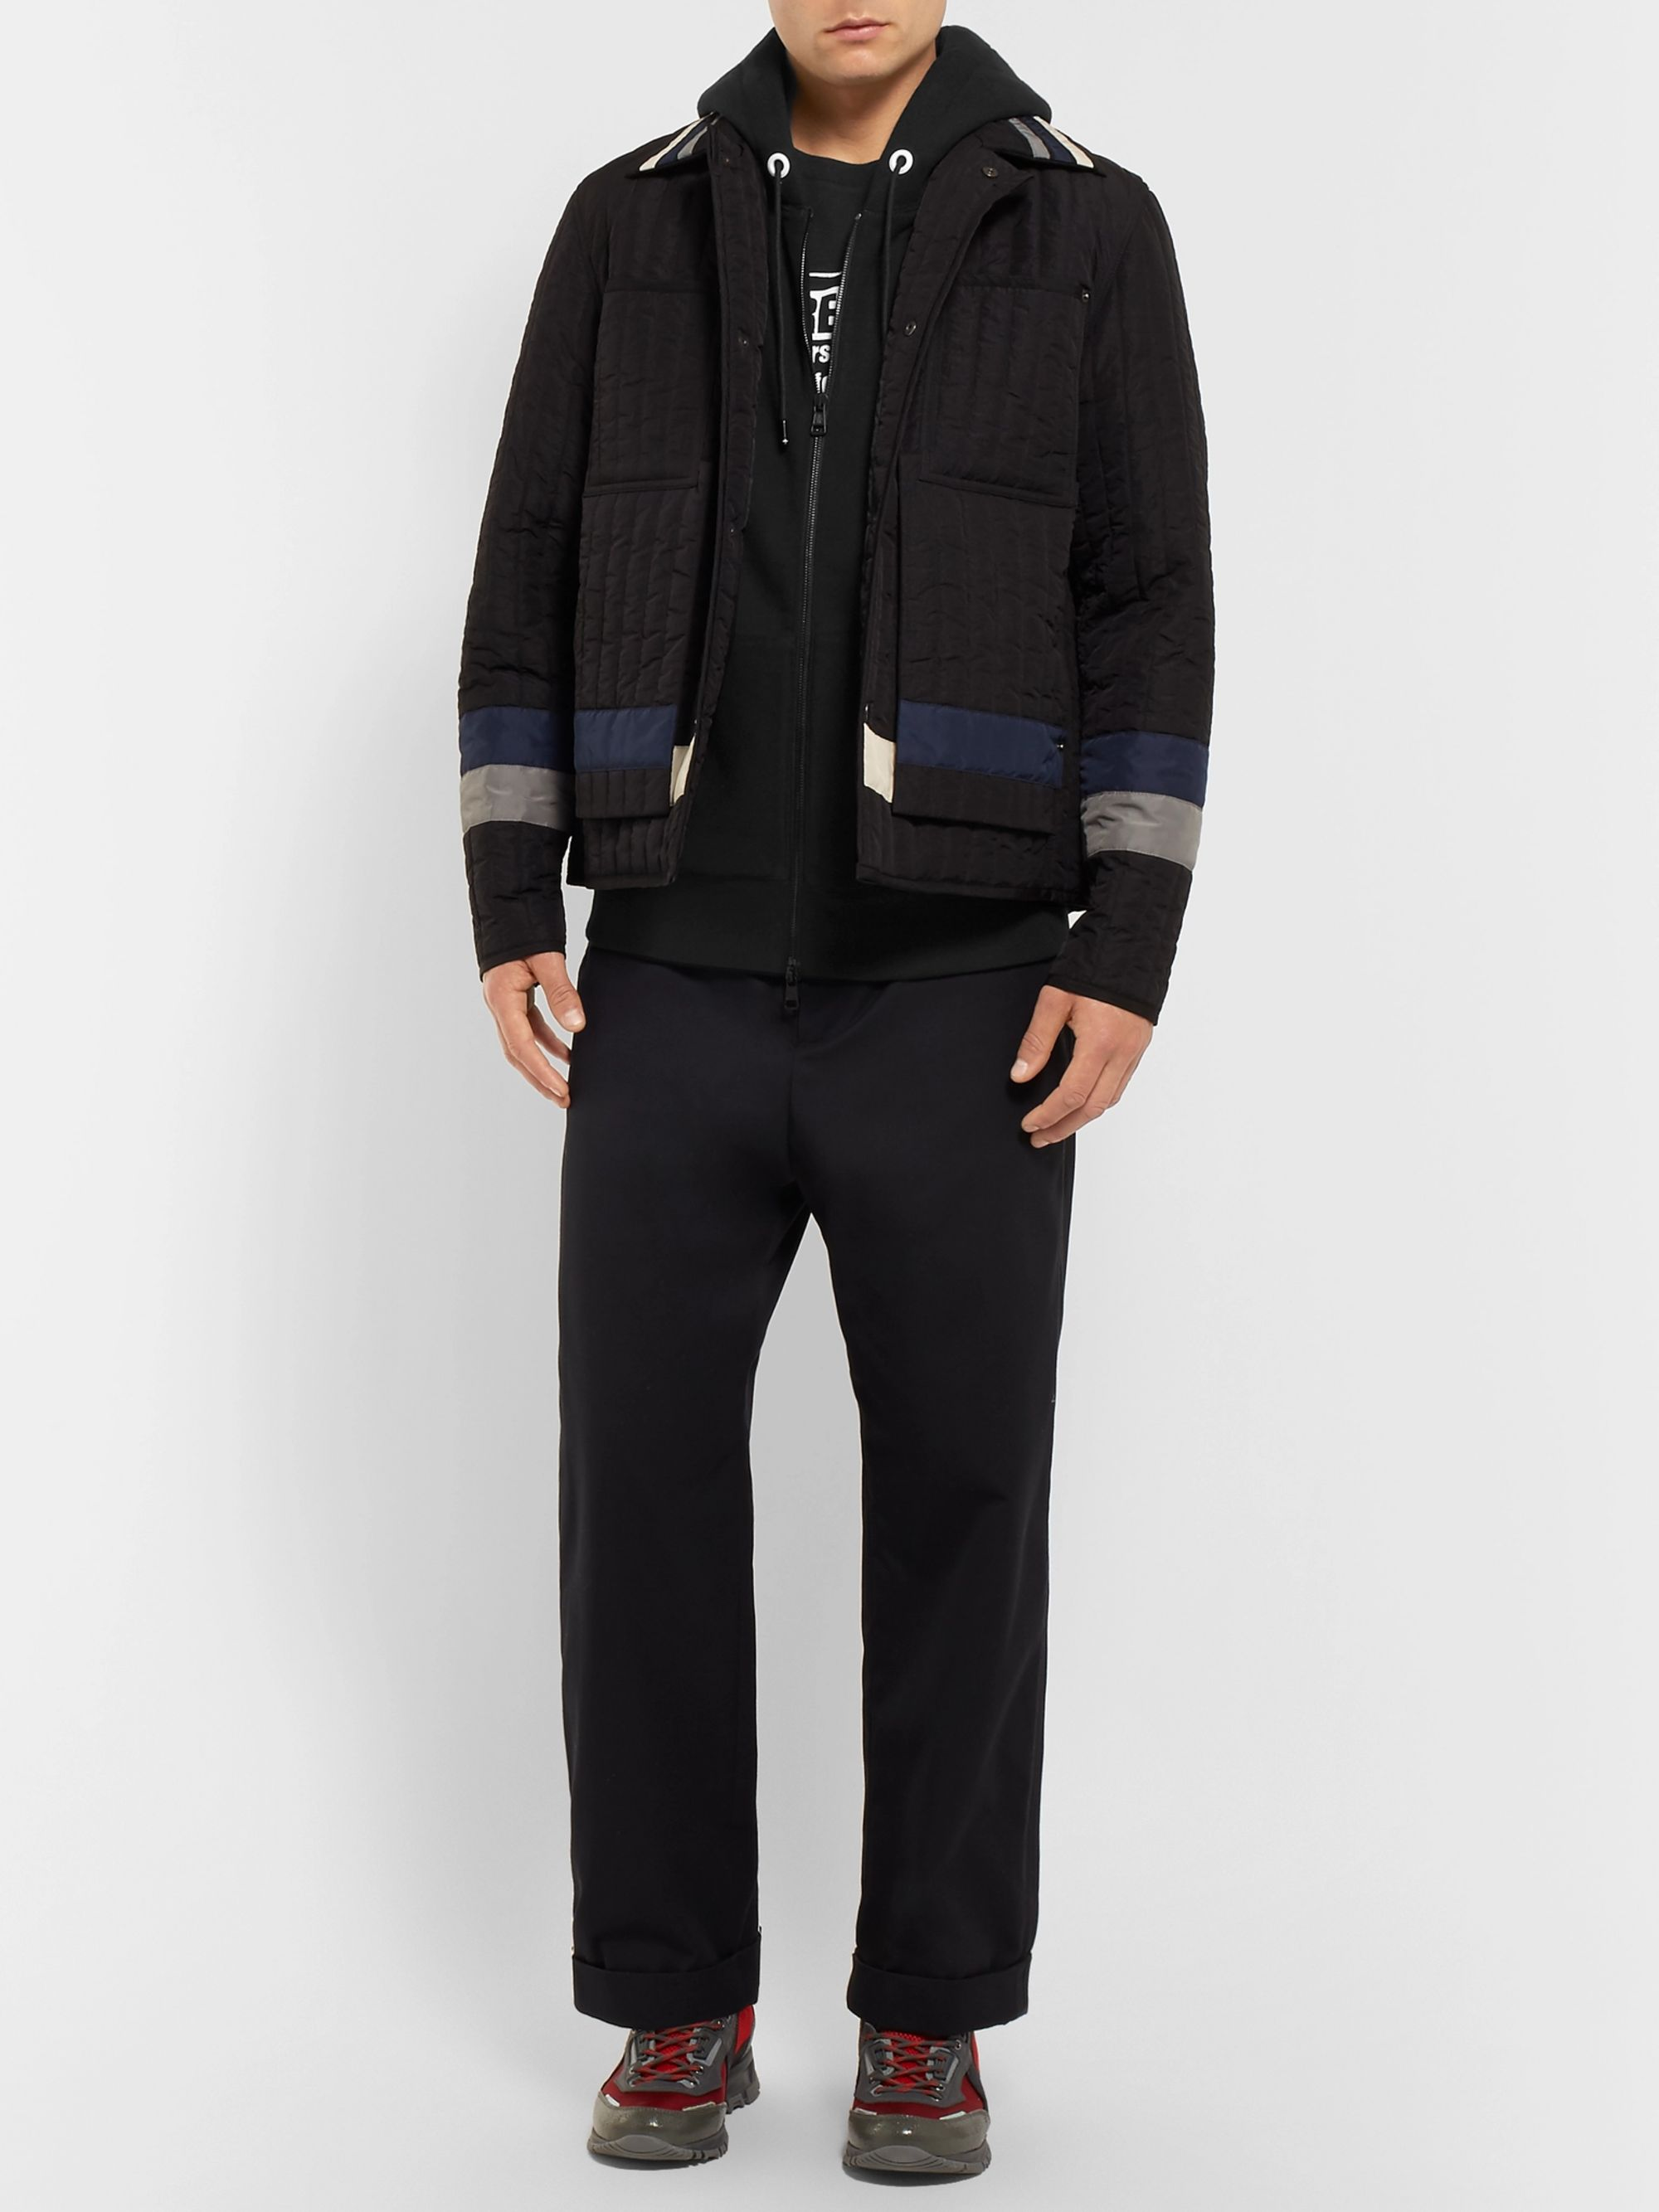 Moncler Genius 7 Moncler Fragment Shell-Panelled Loopback Cotton-Jersey Zip-Up Hoodie